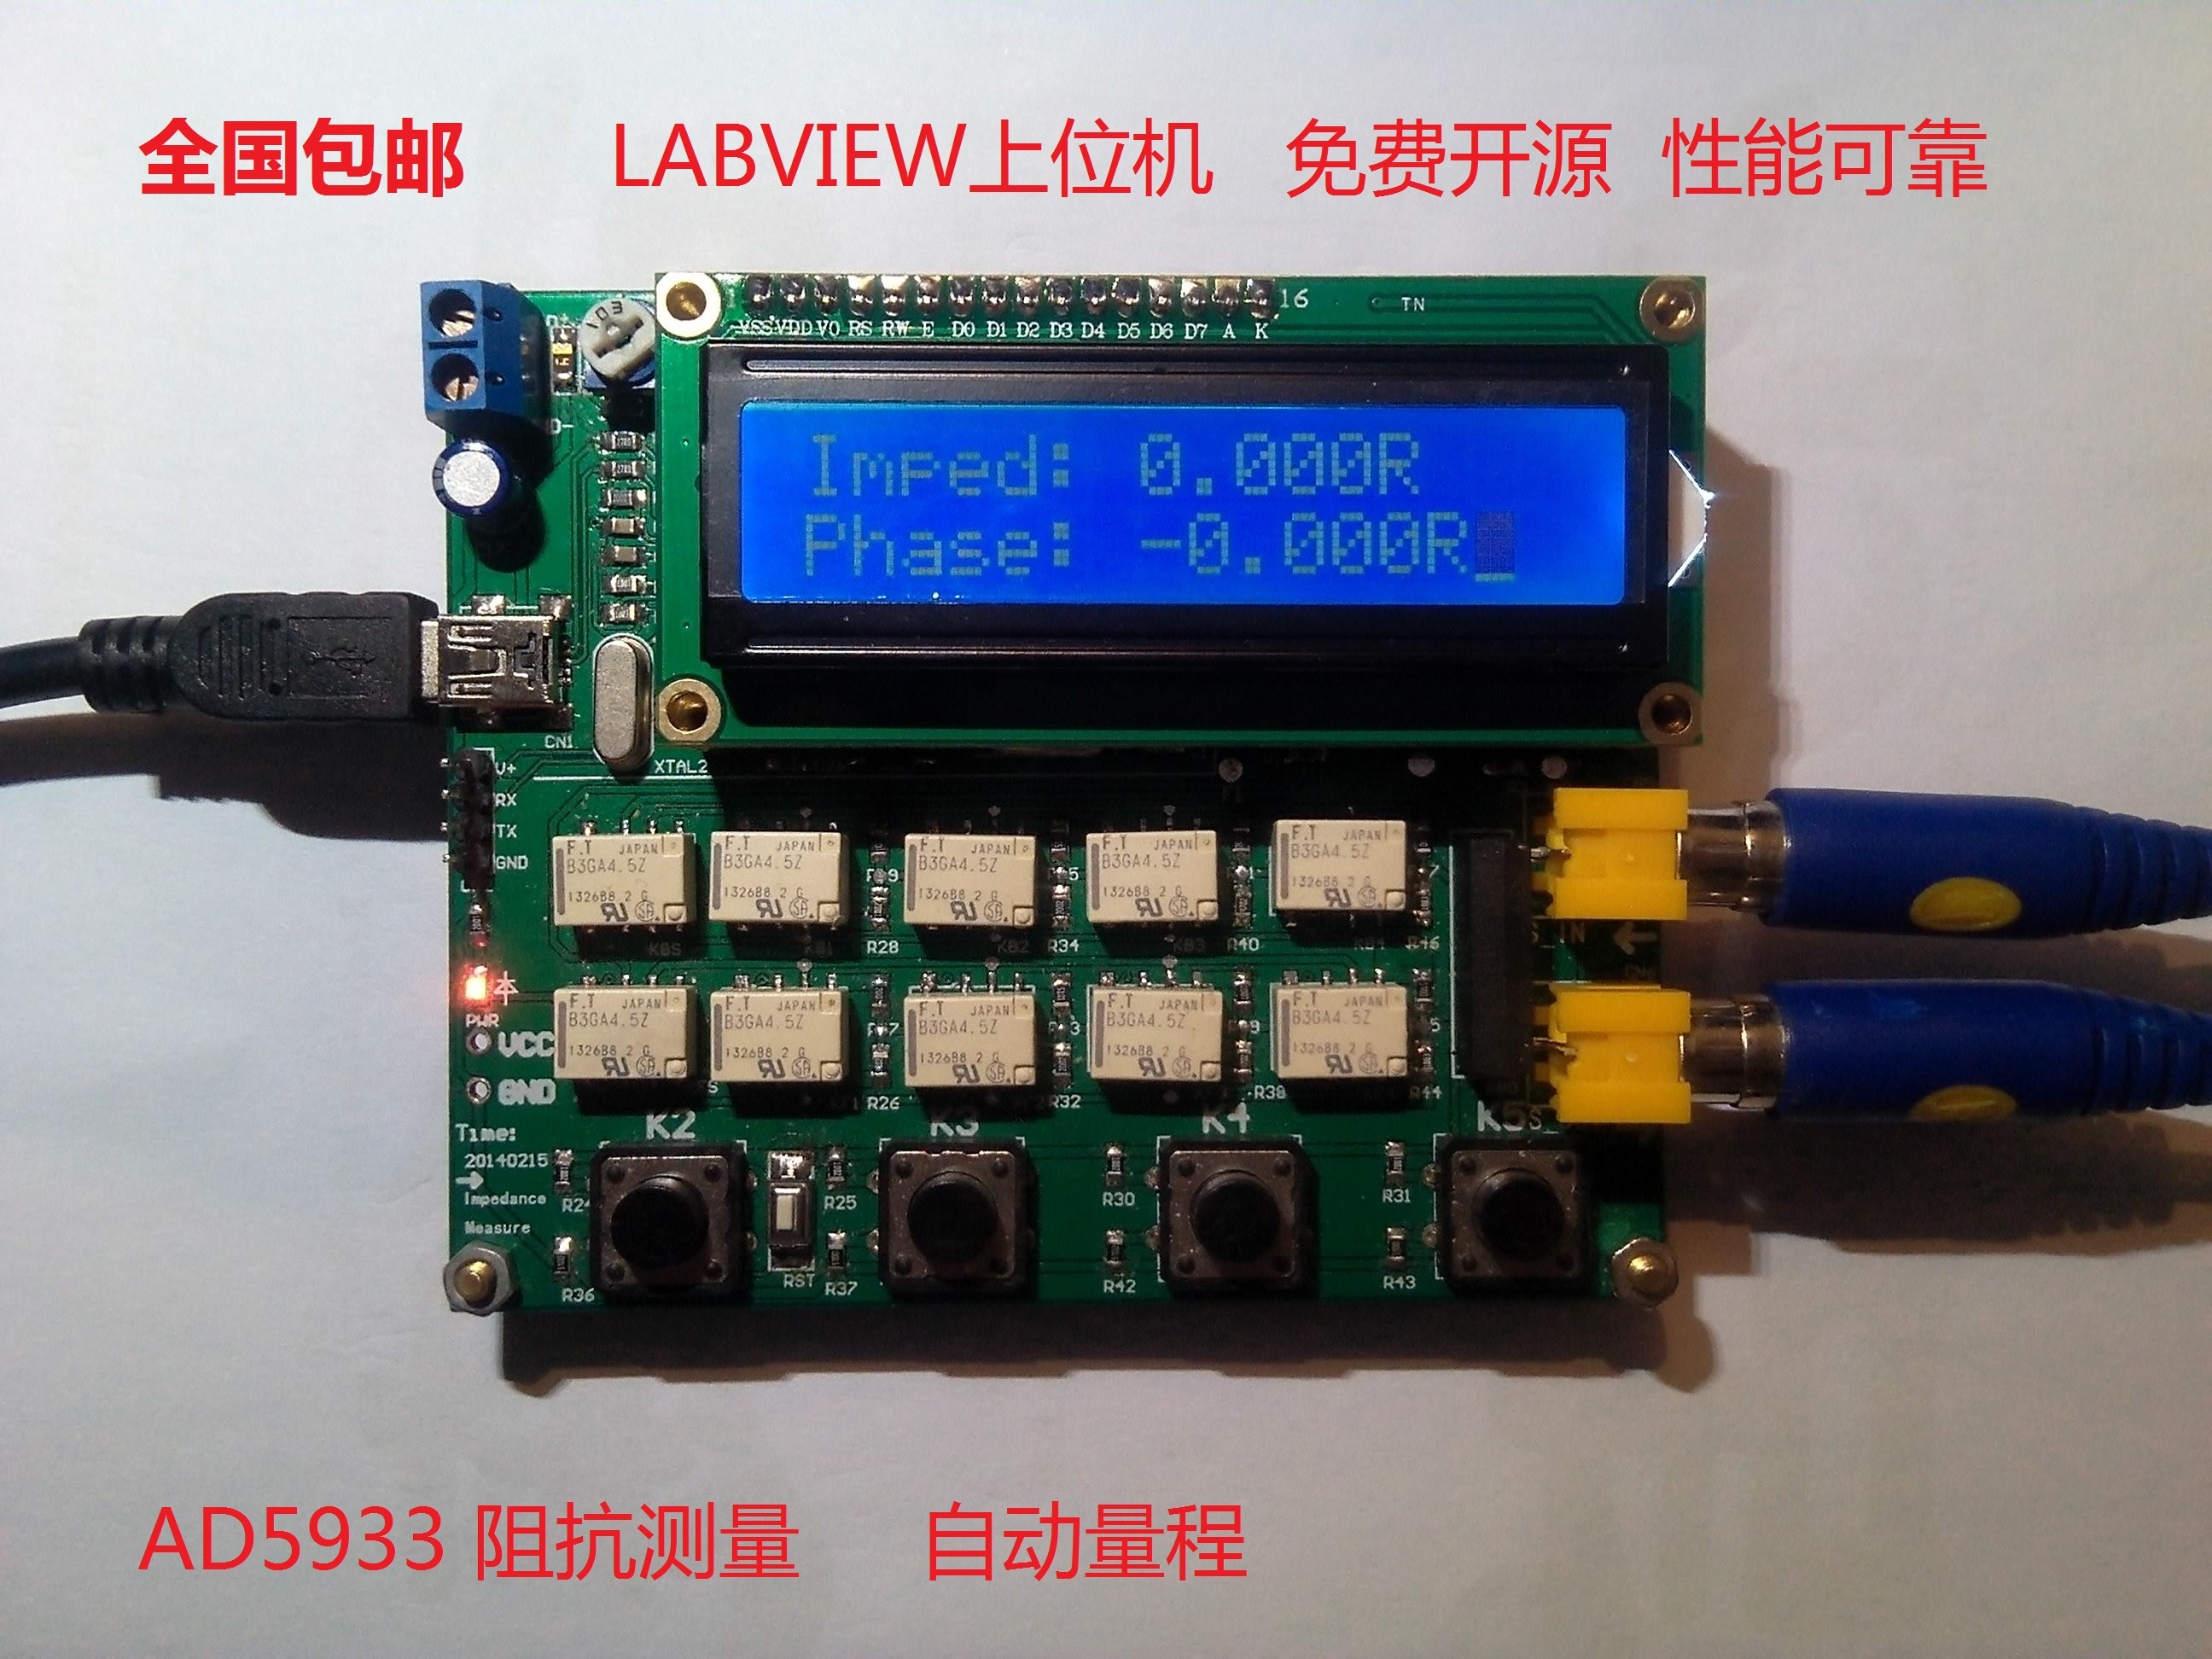 AD5933 impedance measurement, development board evaluation board, Labview host computer, singlechip control, MCU based on 51 of the almighty wireless development board nrf905 cc1100 si4432 wireless evaluation board